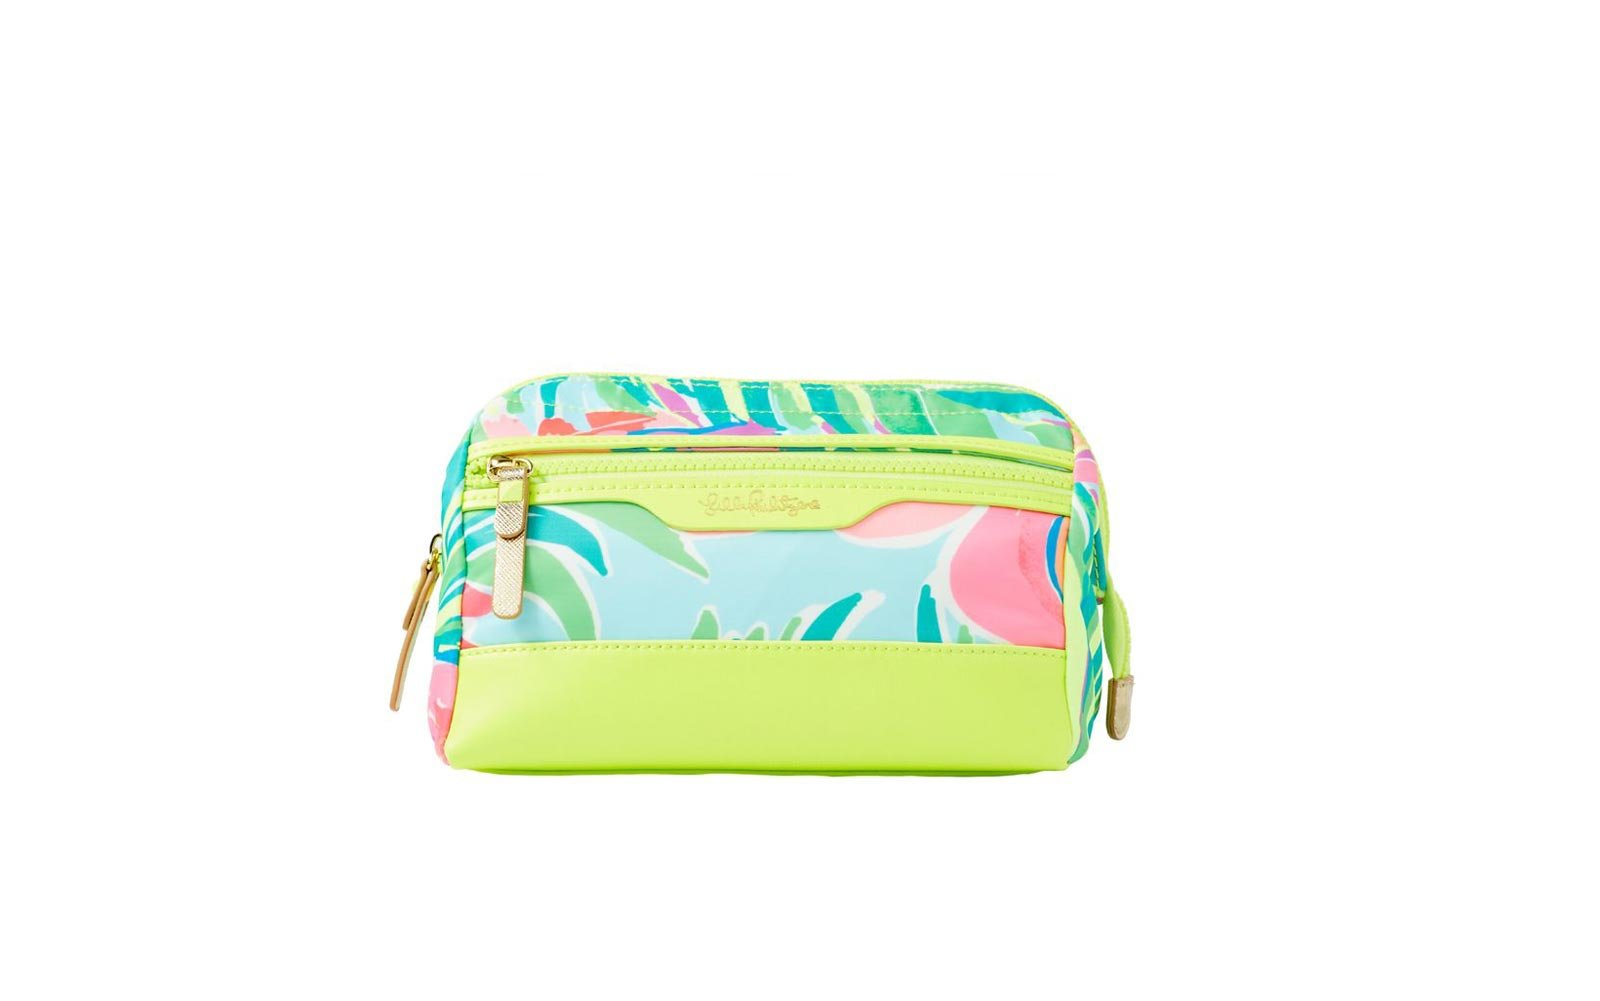 da4e07d4f01d Weekend  Lilly Pulitzer Travel Dopp Cosmetic Case. This brightly printed  makeup ...